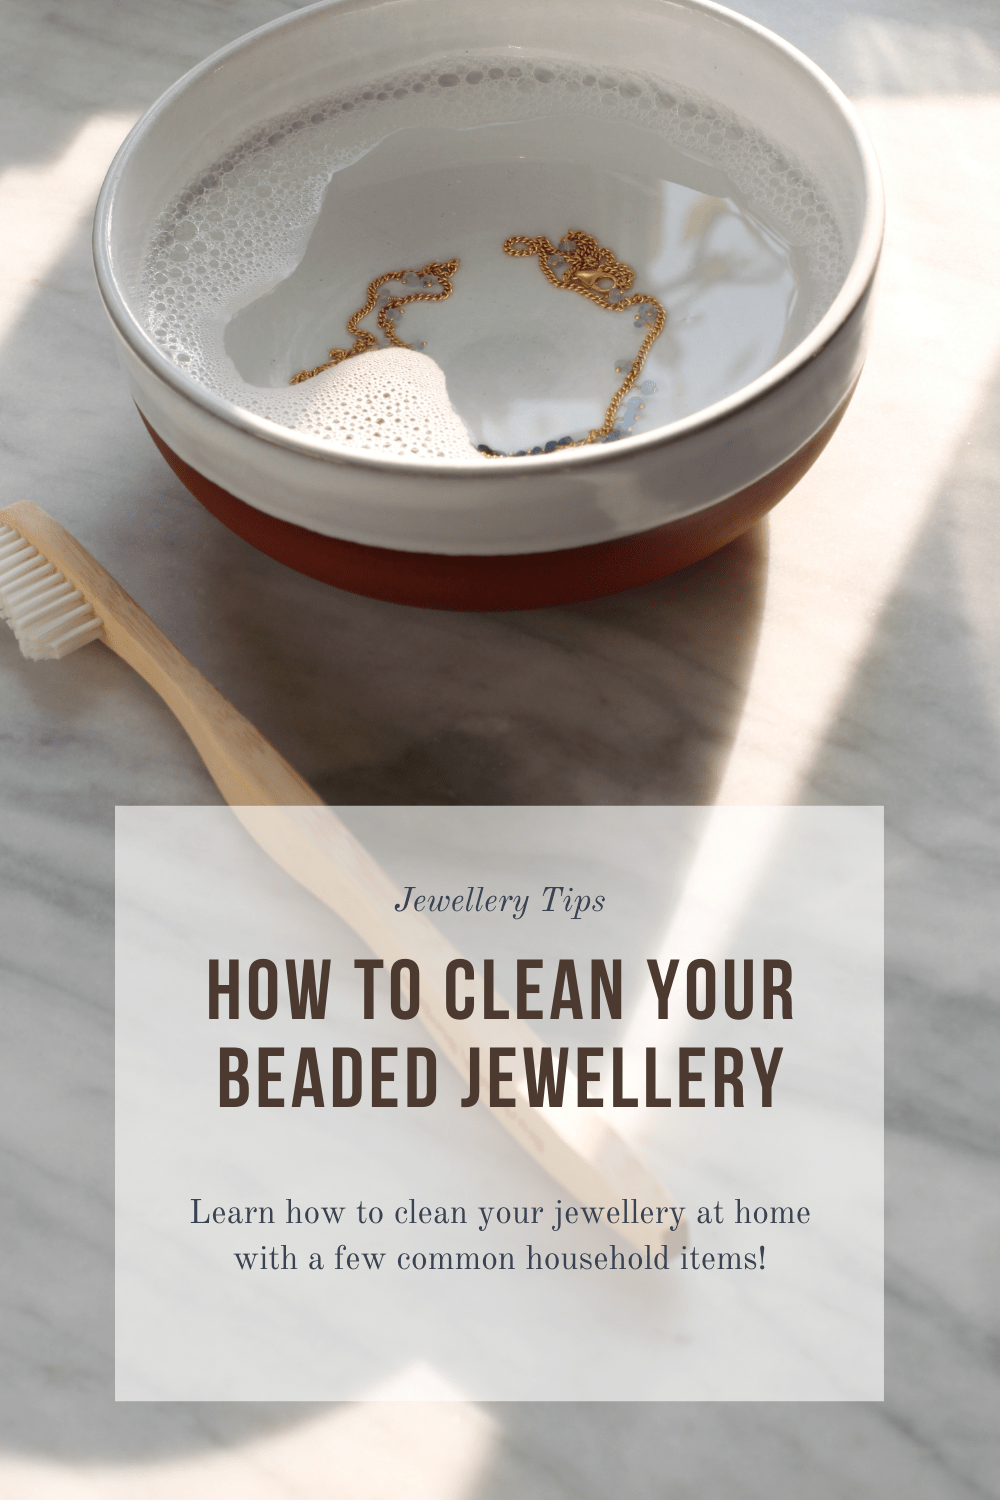 Jewellery Tips - how to clean your beaded jewellery. Pin to Pinterest.